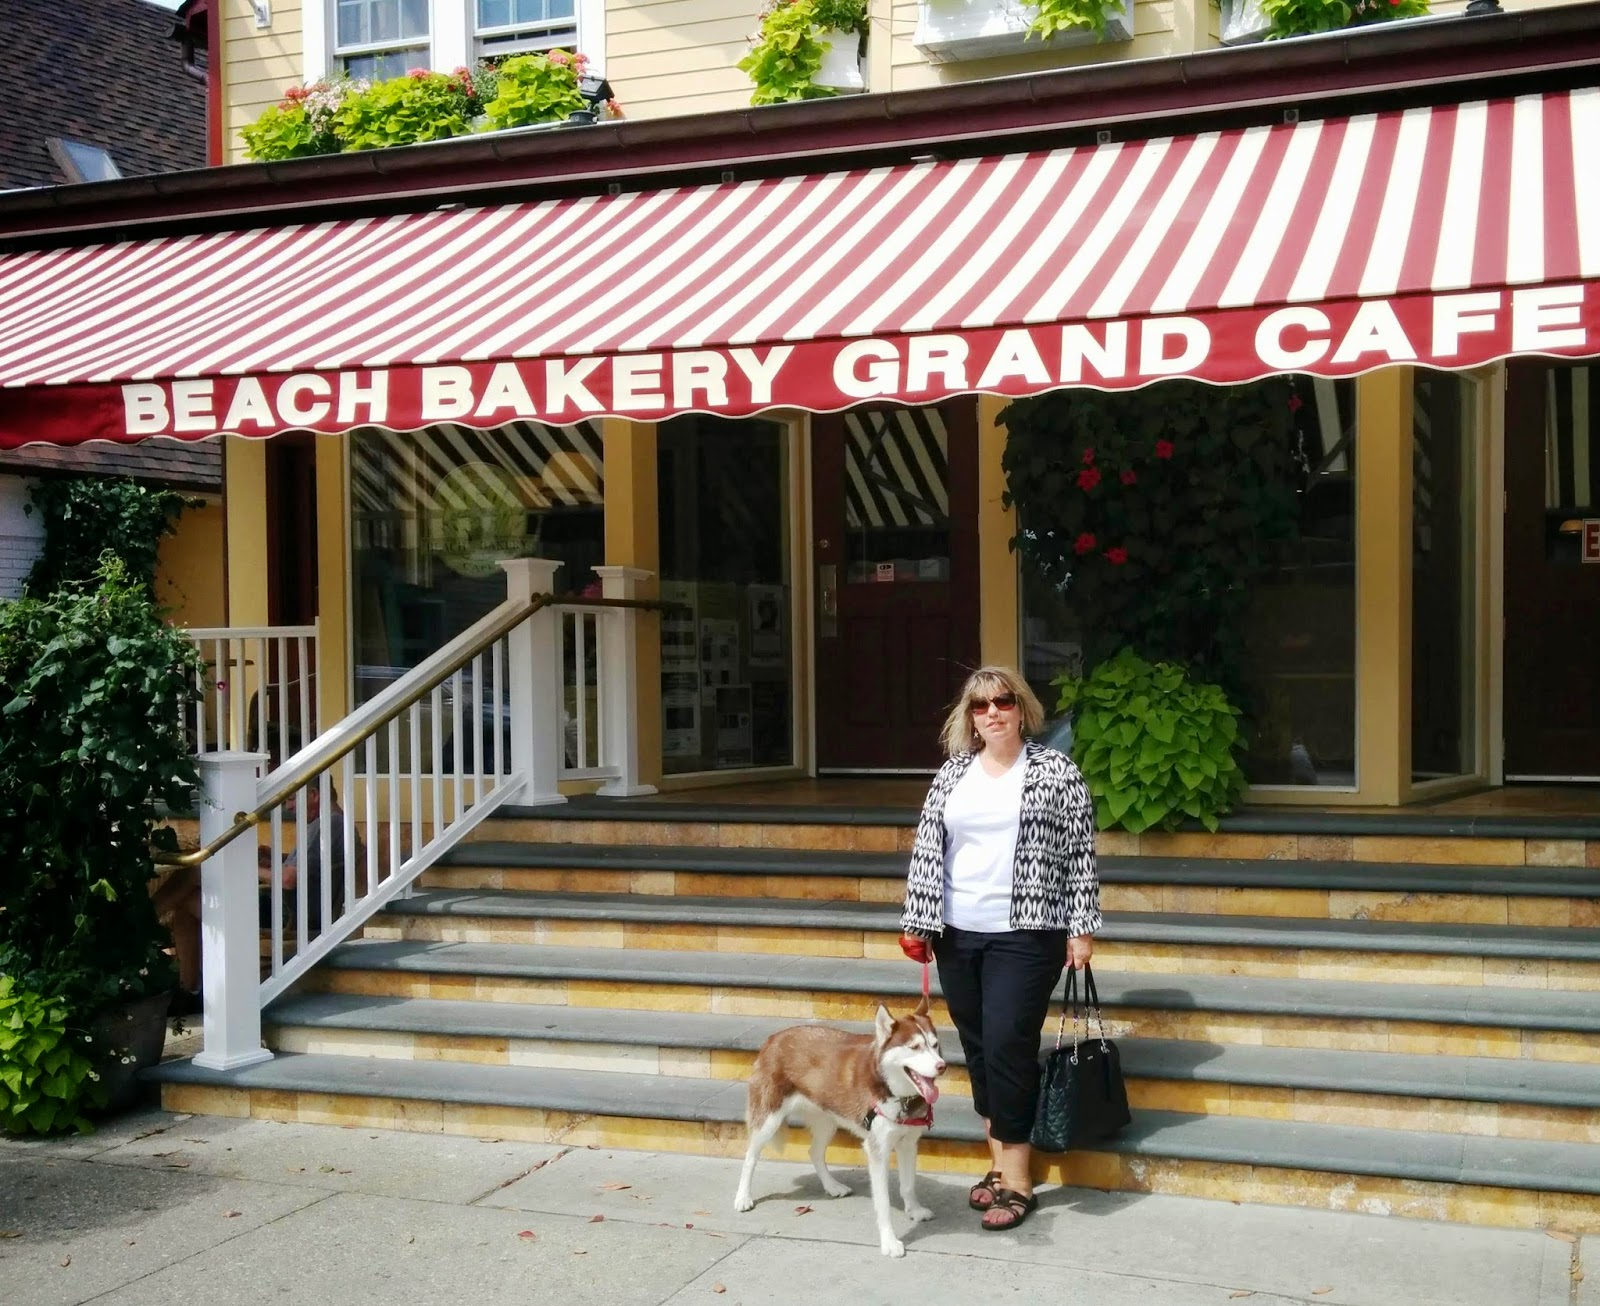 At dog friendly Beach Bakery Grand Cafe in The Hamptons, Long Island NY